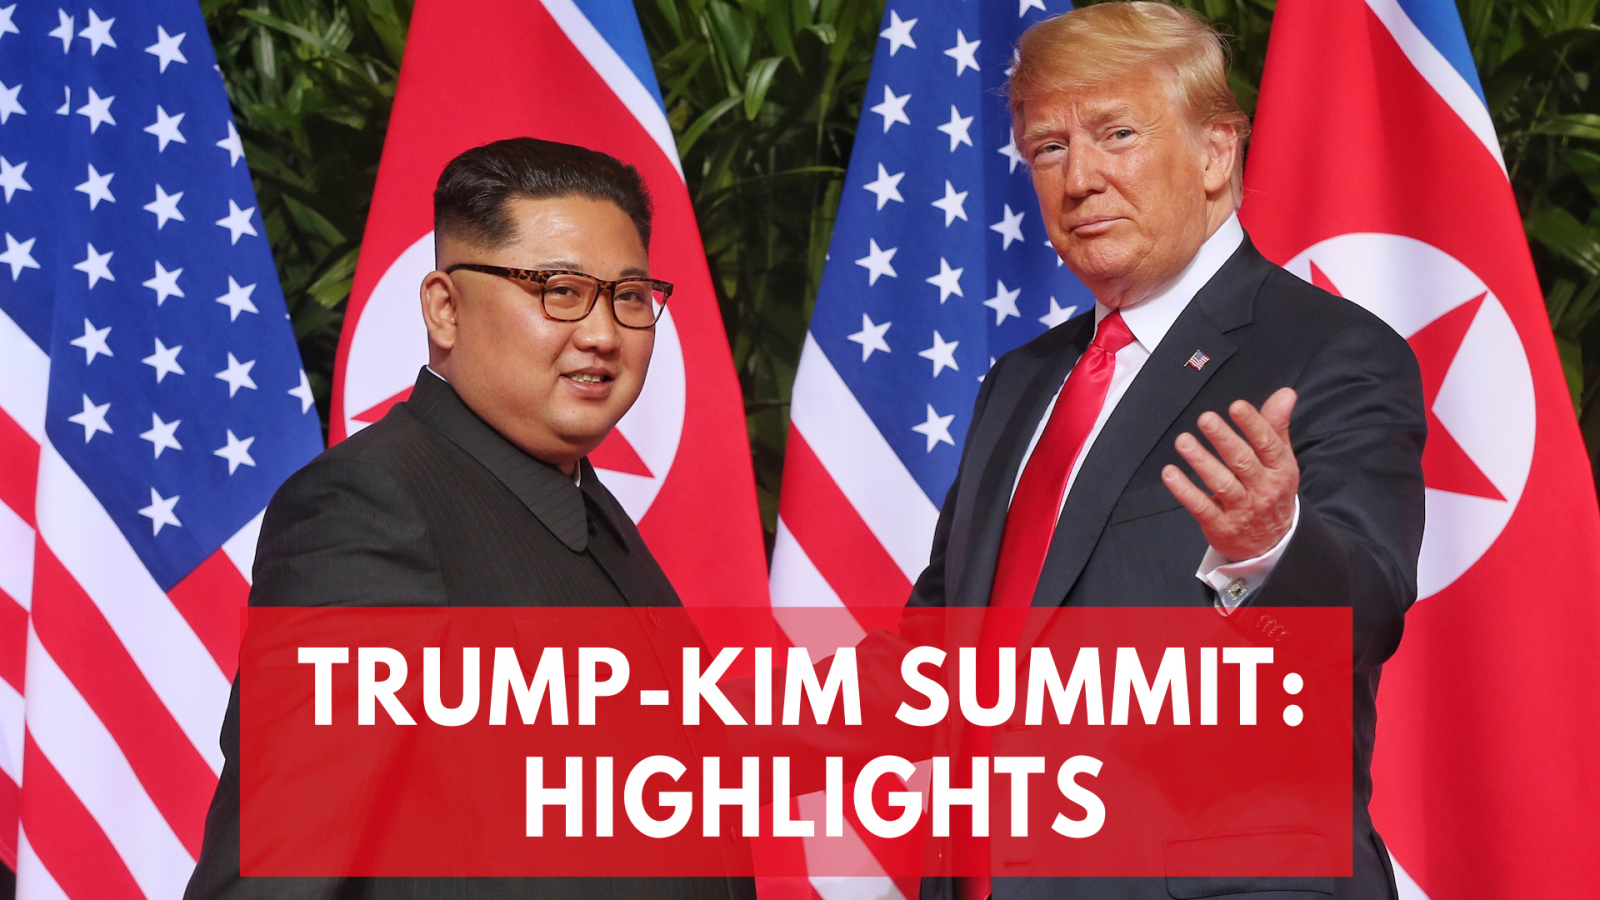 trump-kim-summit-key-moments-from-their-historic-meeting-in-singapore